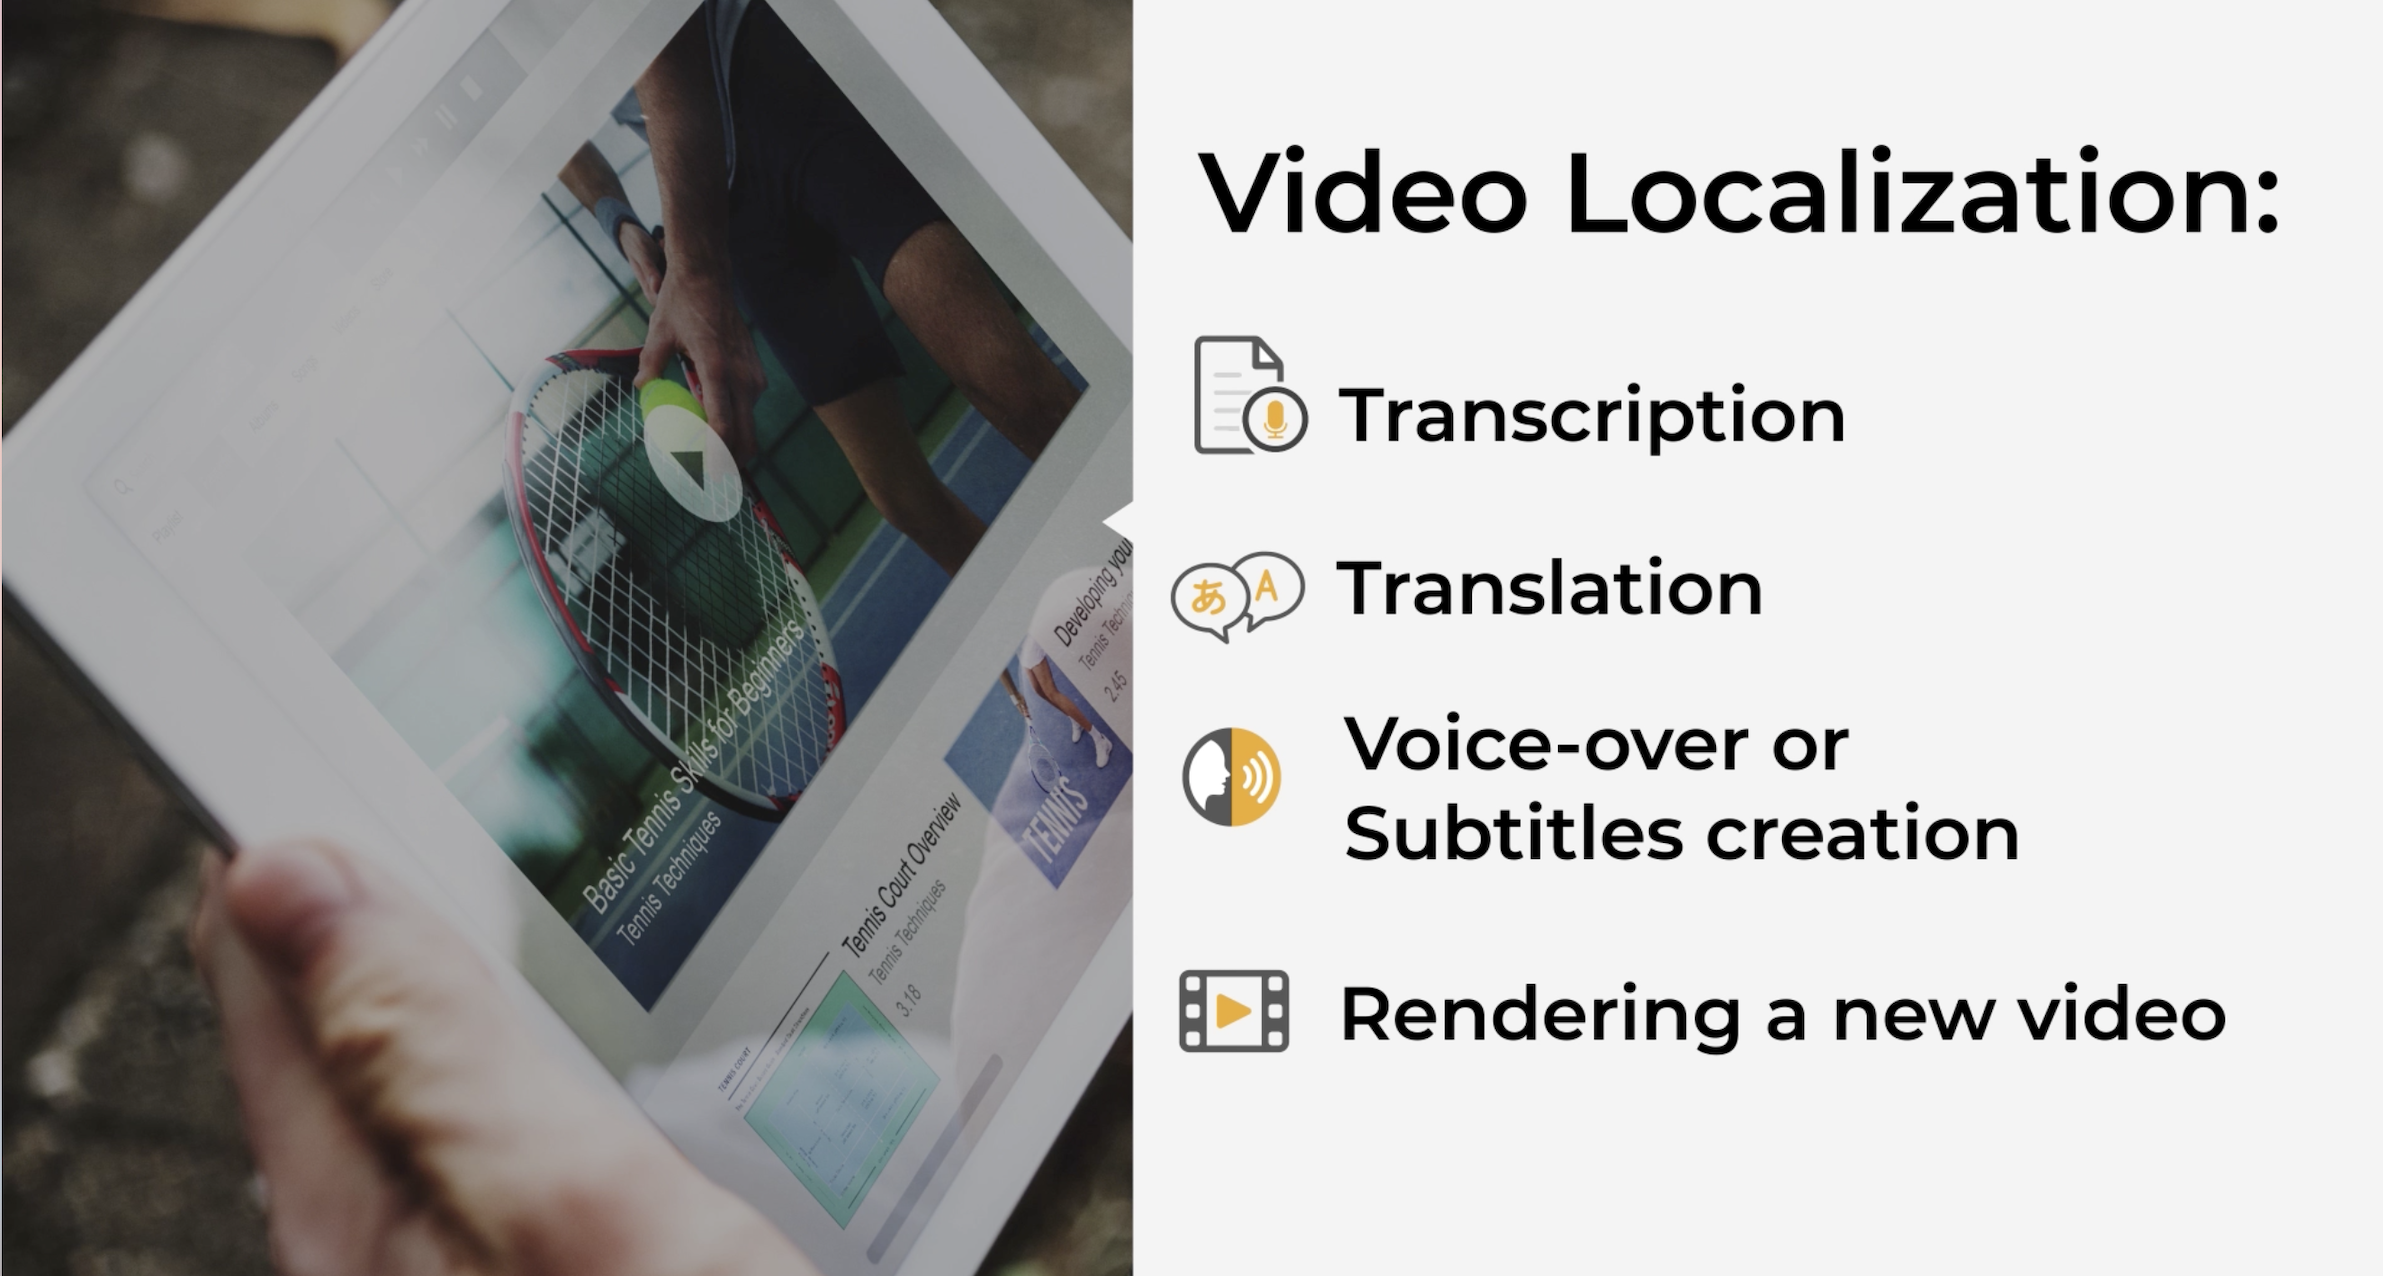 Importance of Transcription and Subtitles in Video Localization